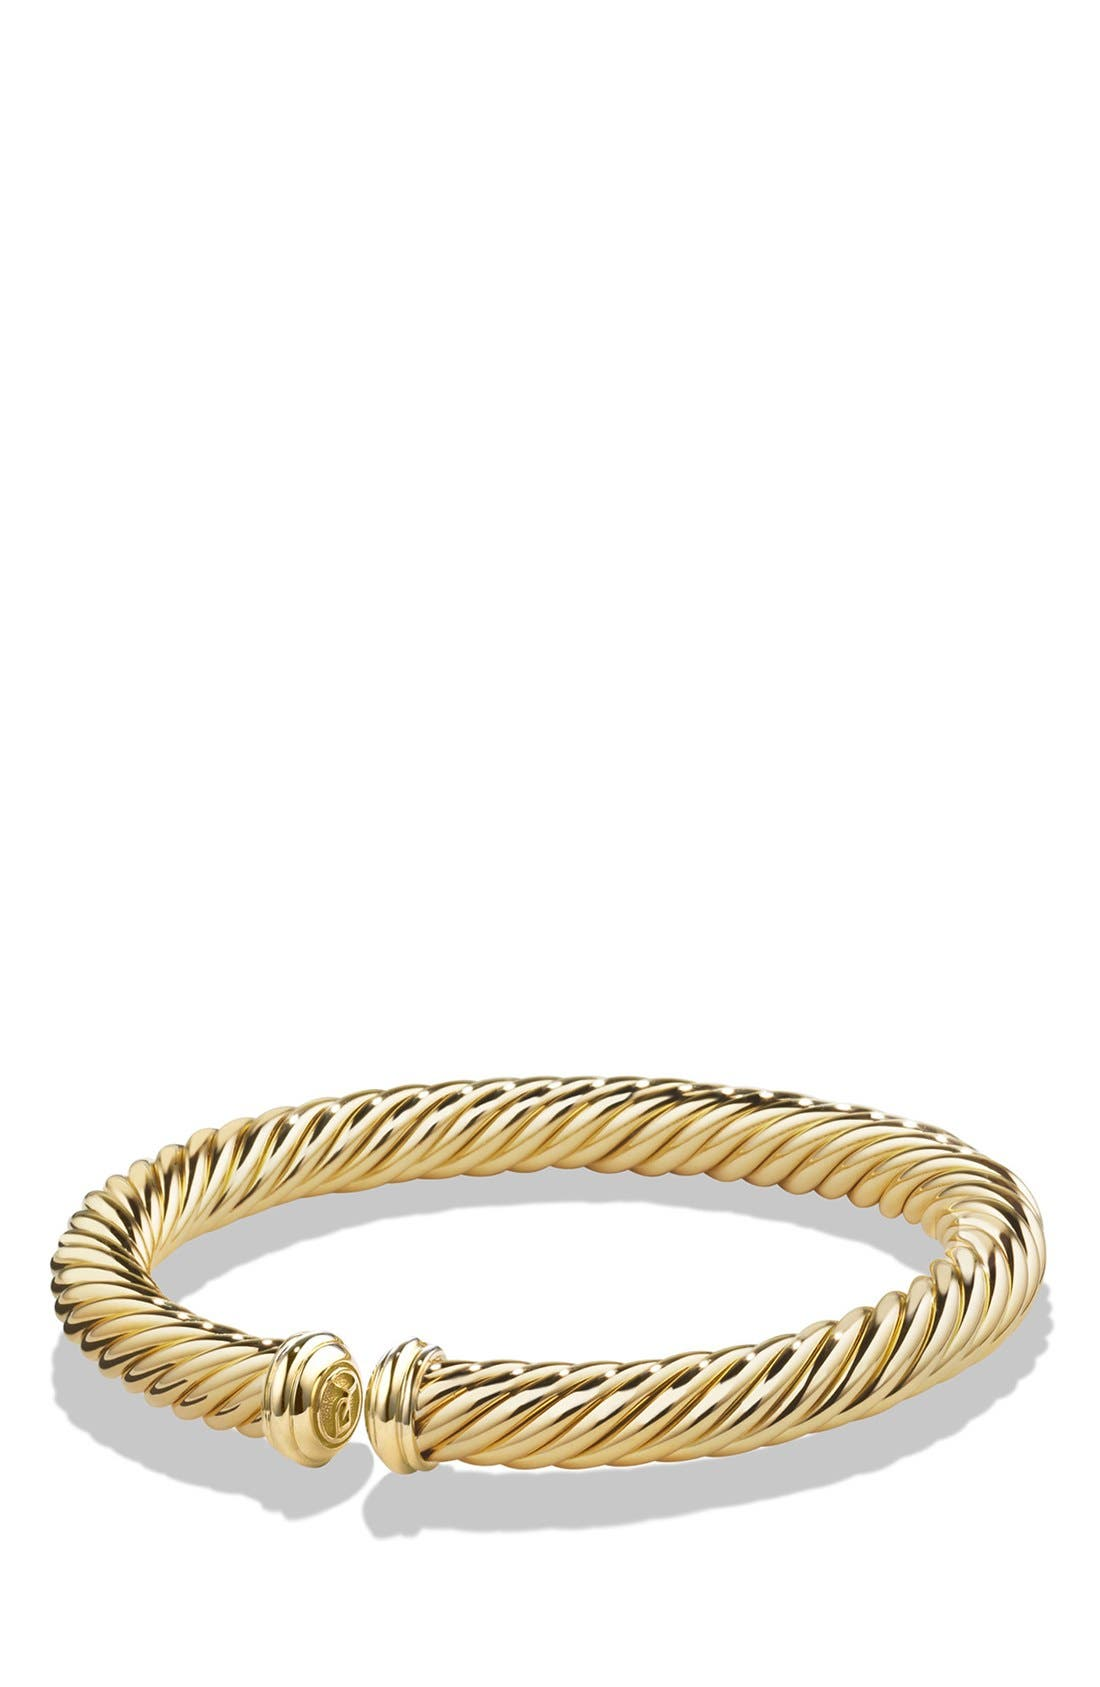 Cable Spira Bracelet in 18K Gold, 7mm,                         Main,                         color, Yellow Gold